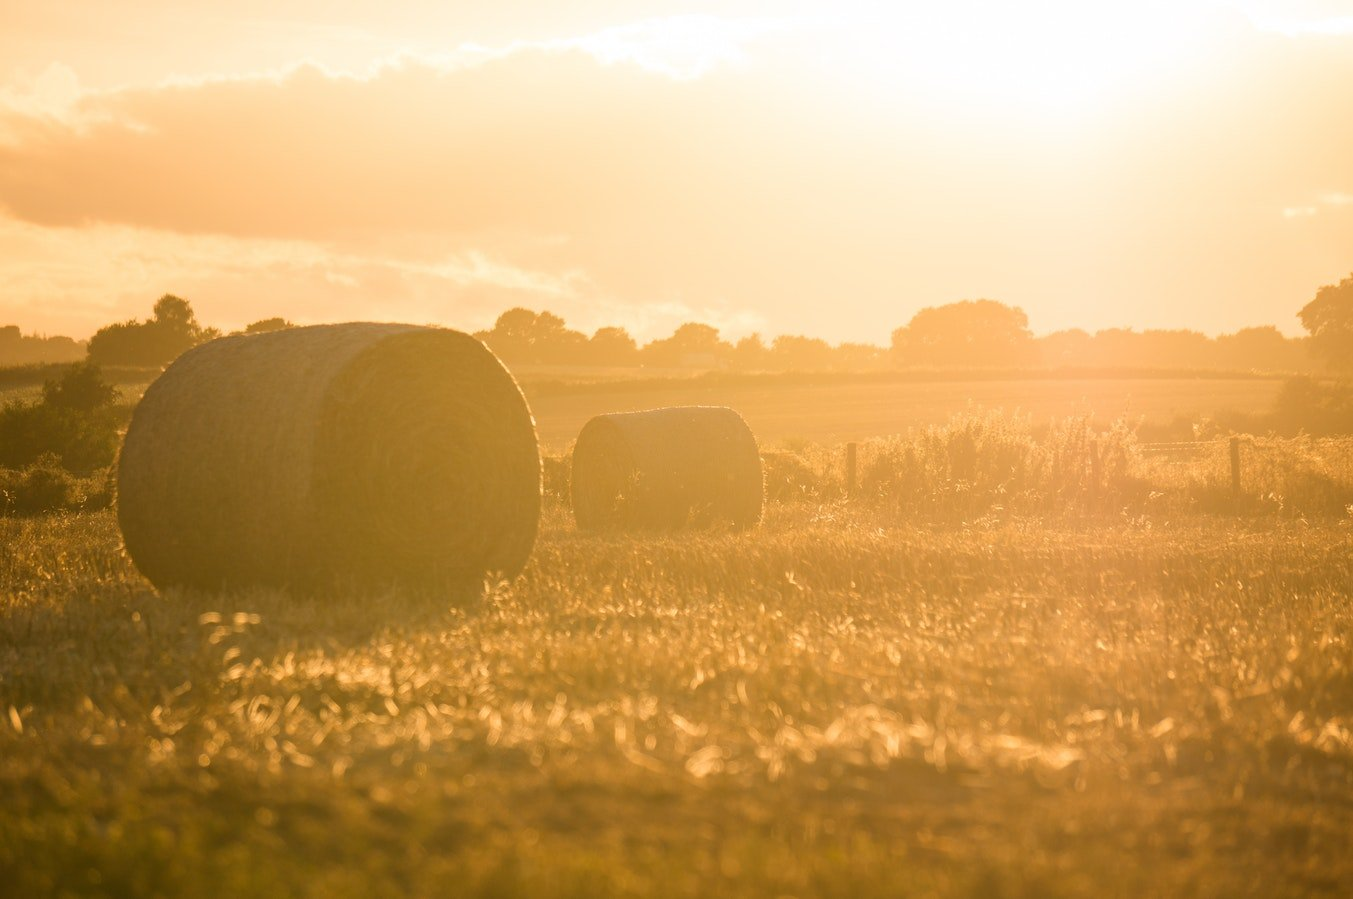 Agriculture Investing with Self-Directed IRA